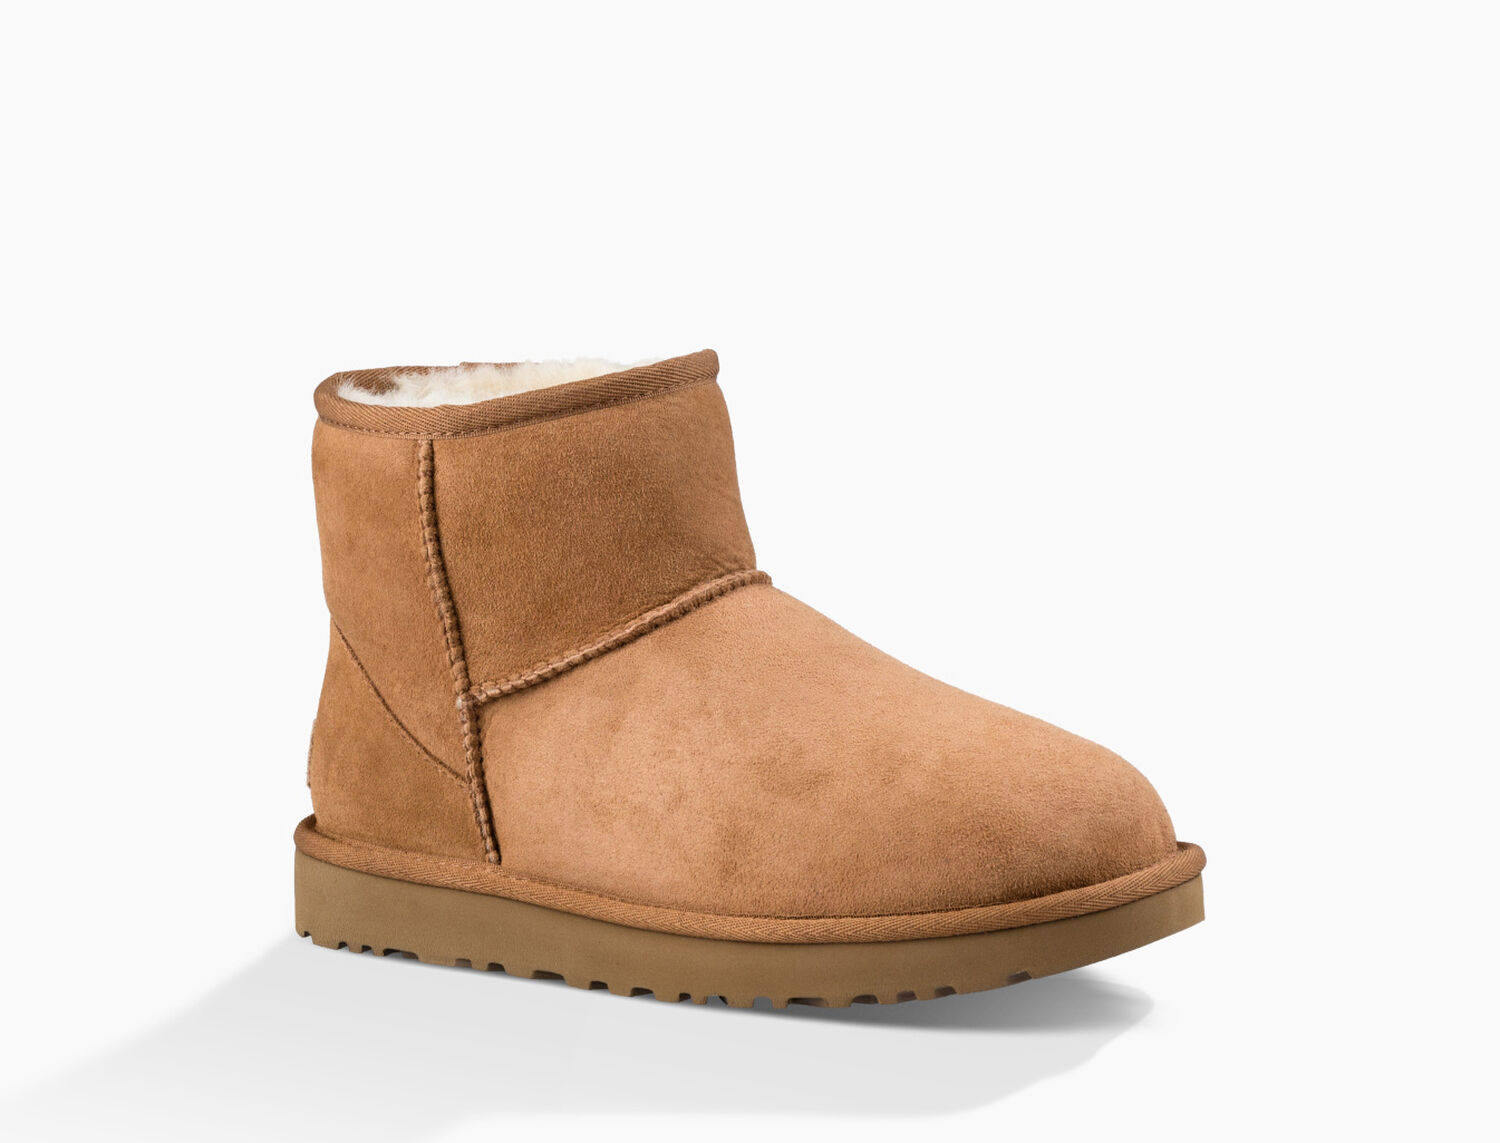 444da5dc0b3 Women's UGG® Classic Mini II Boot | UGG® Official